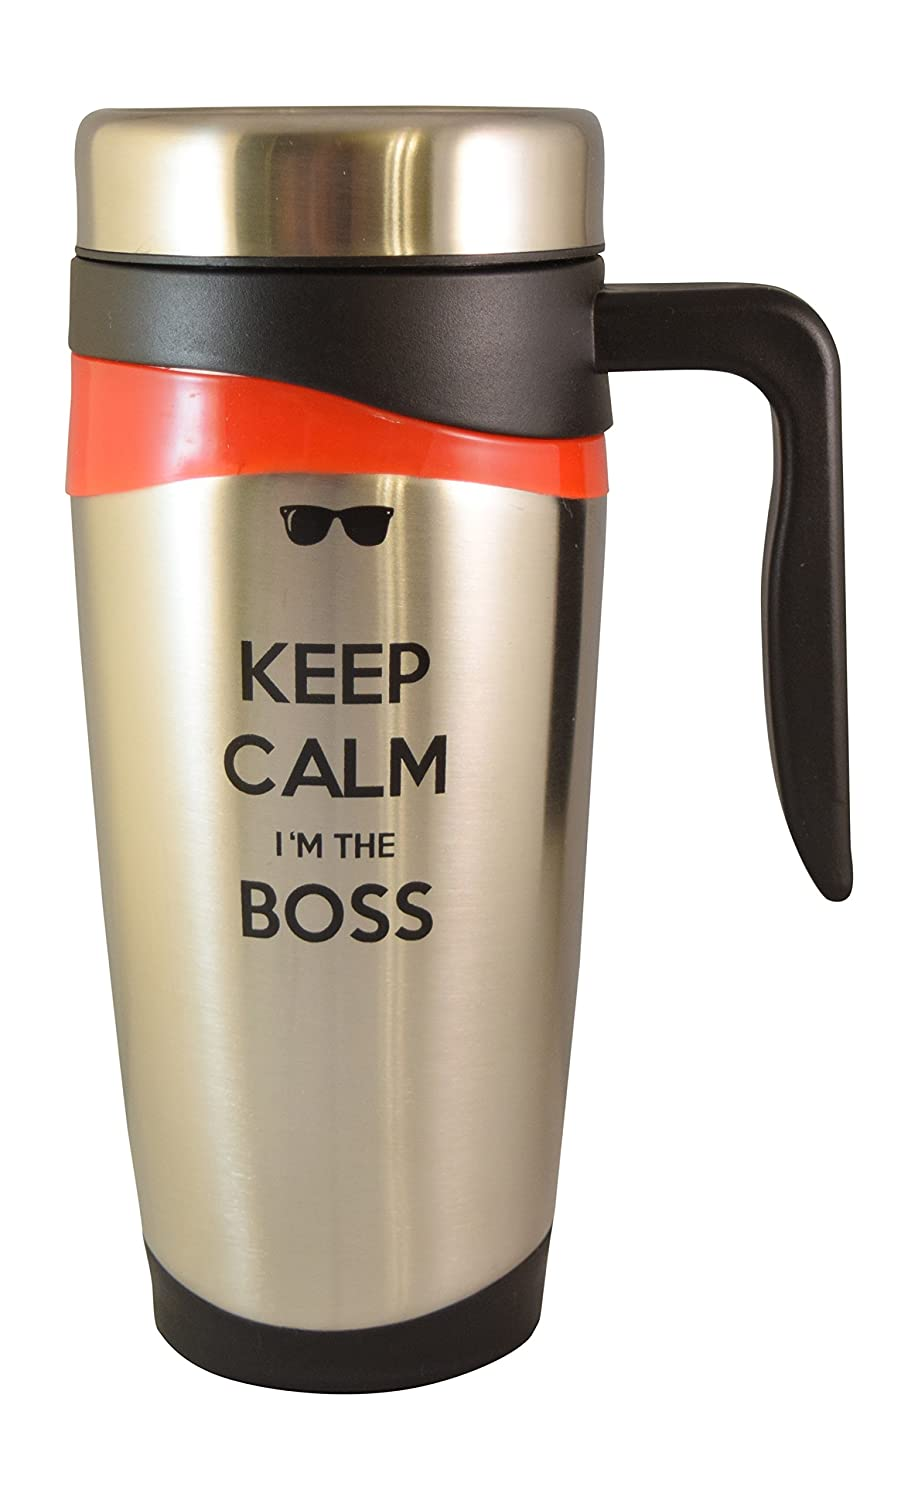 fun holiday gifts for bosses and co-workers